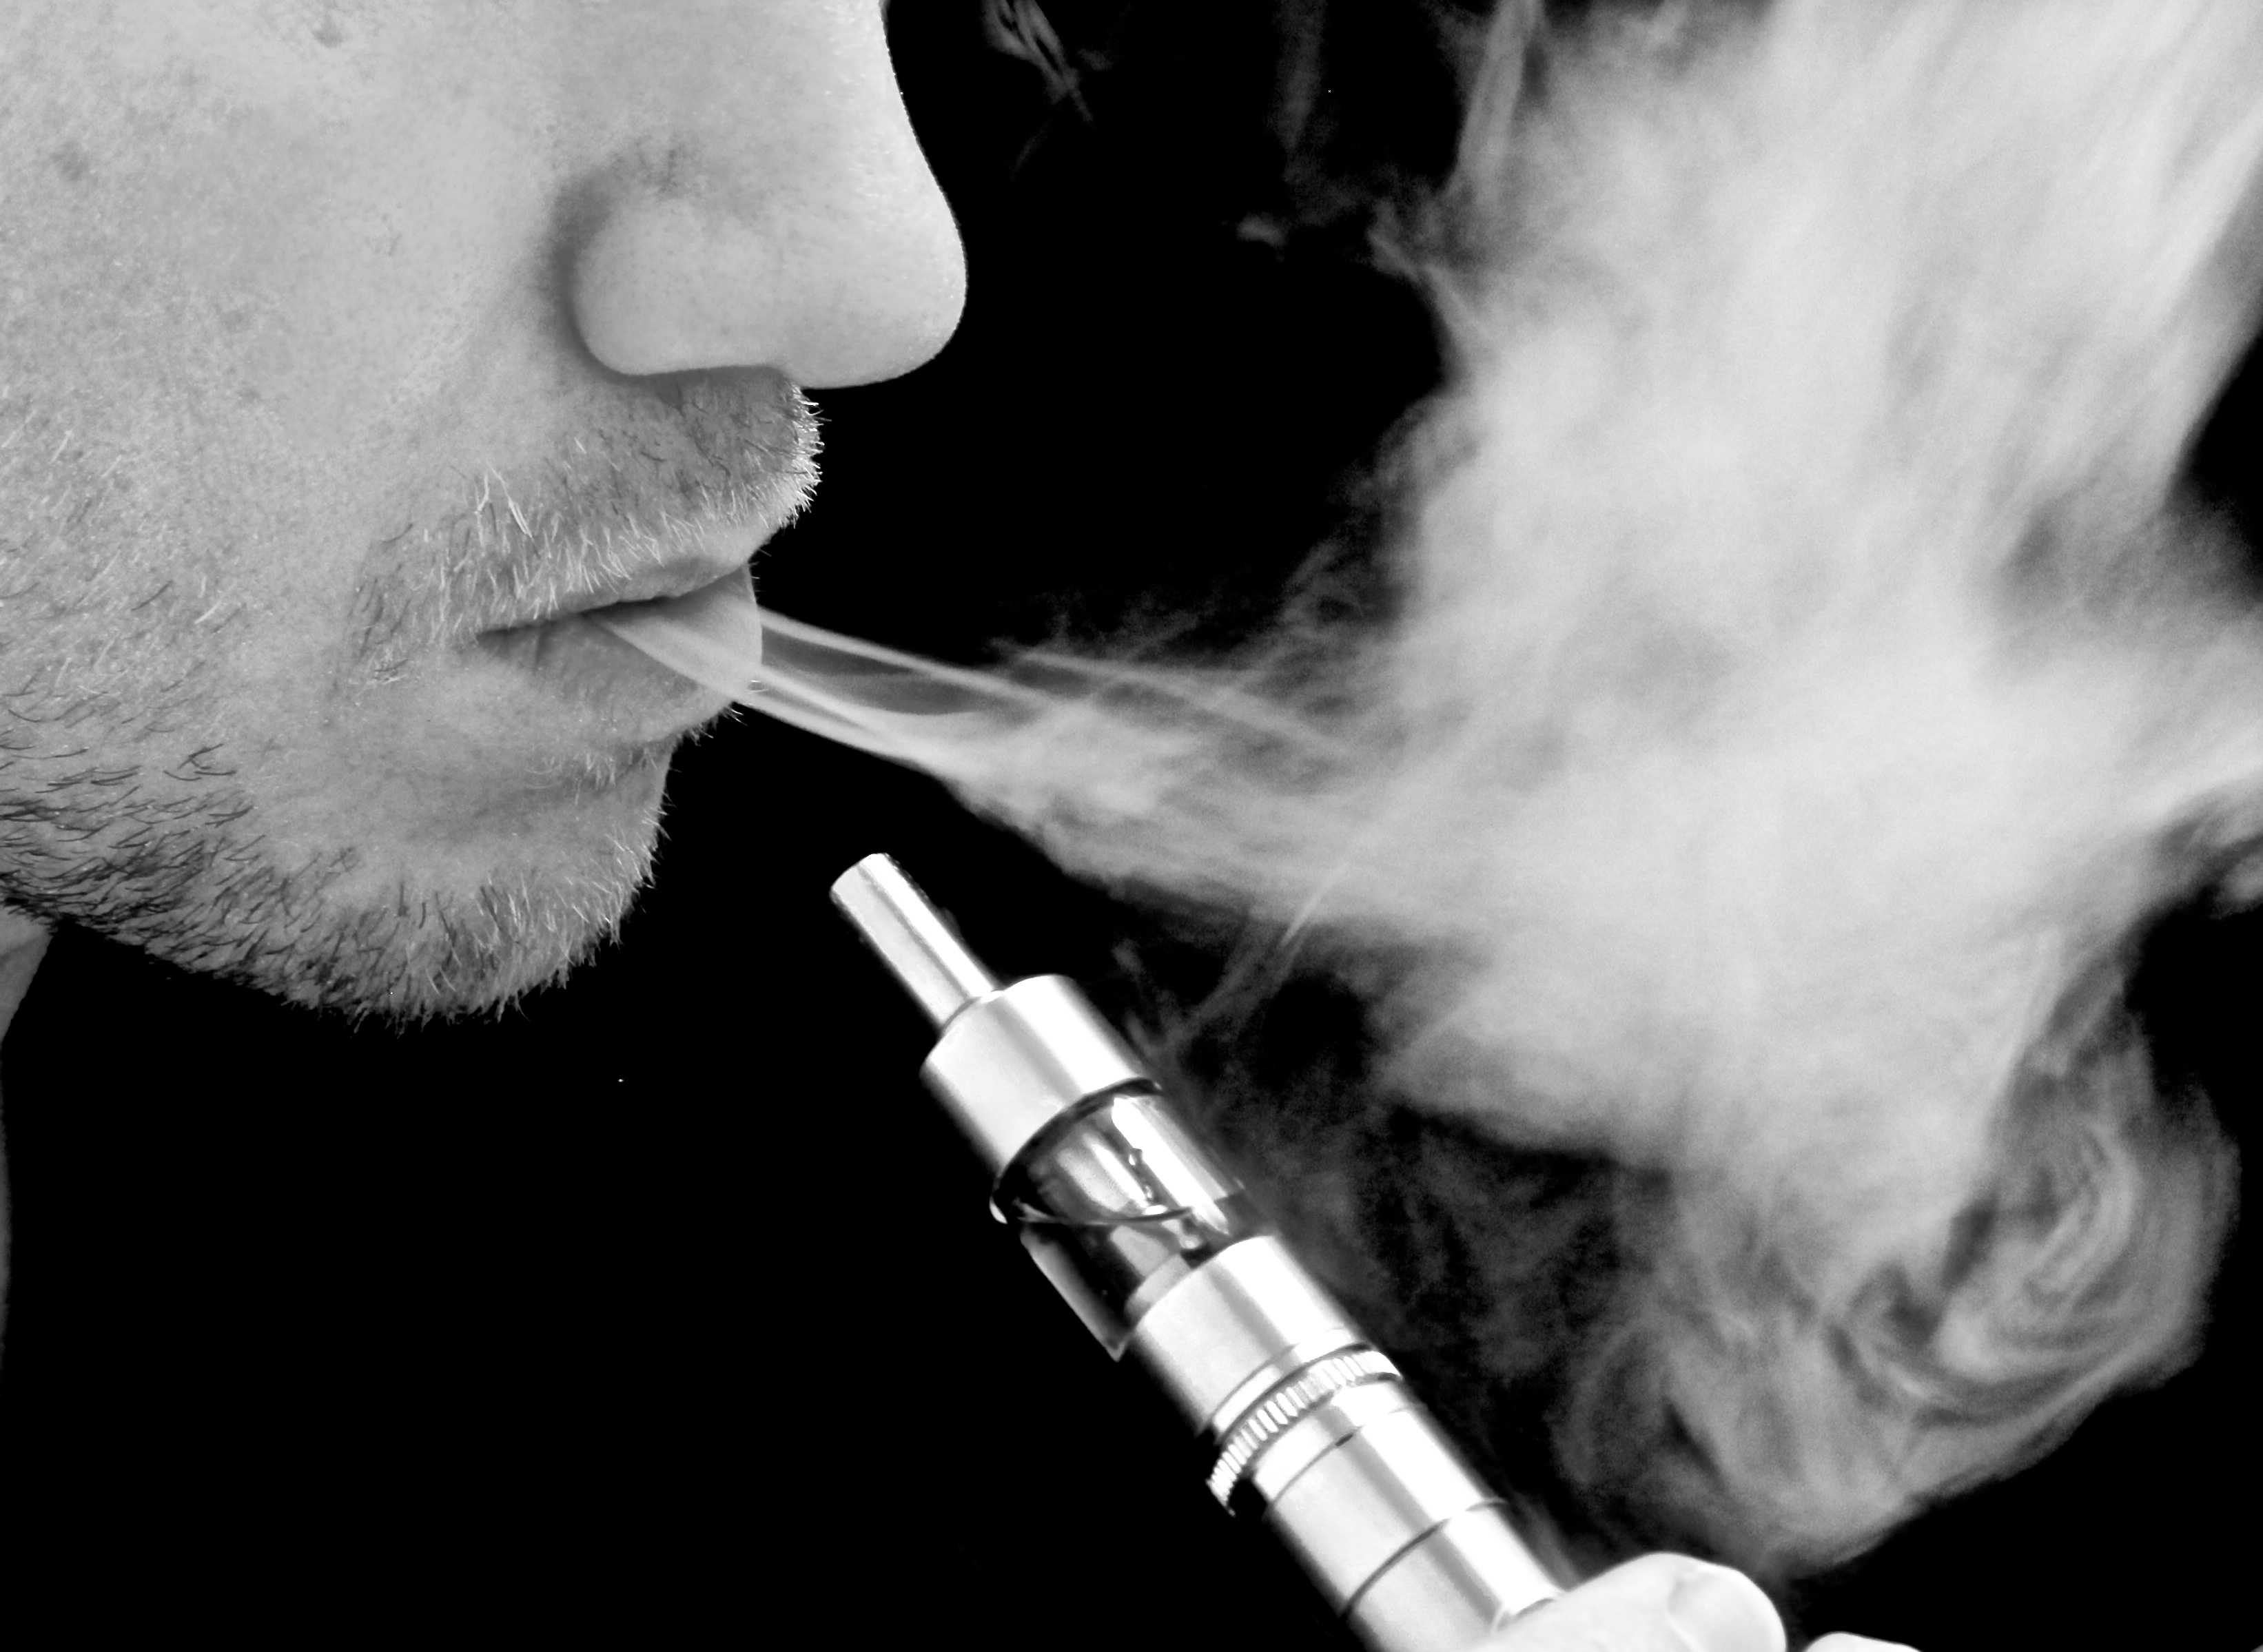 provided by www.vapour.co.uk.